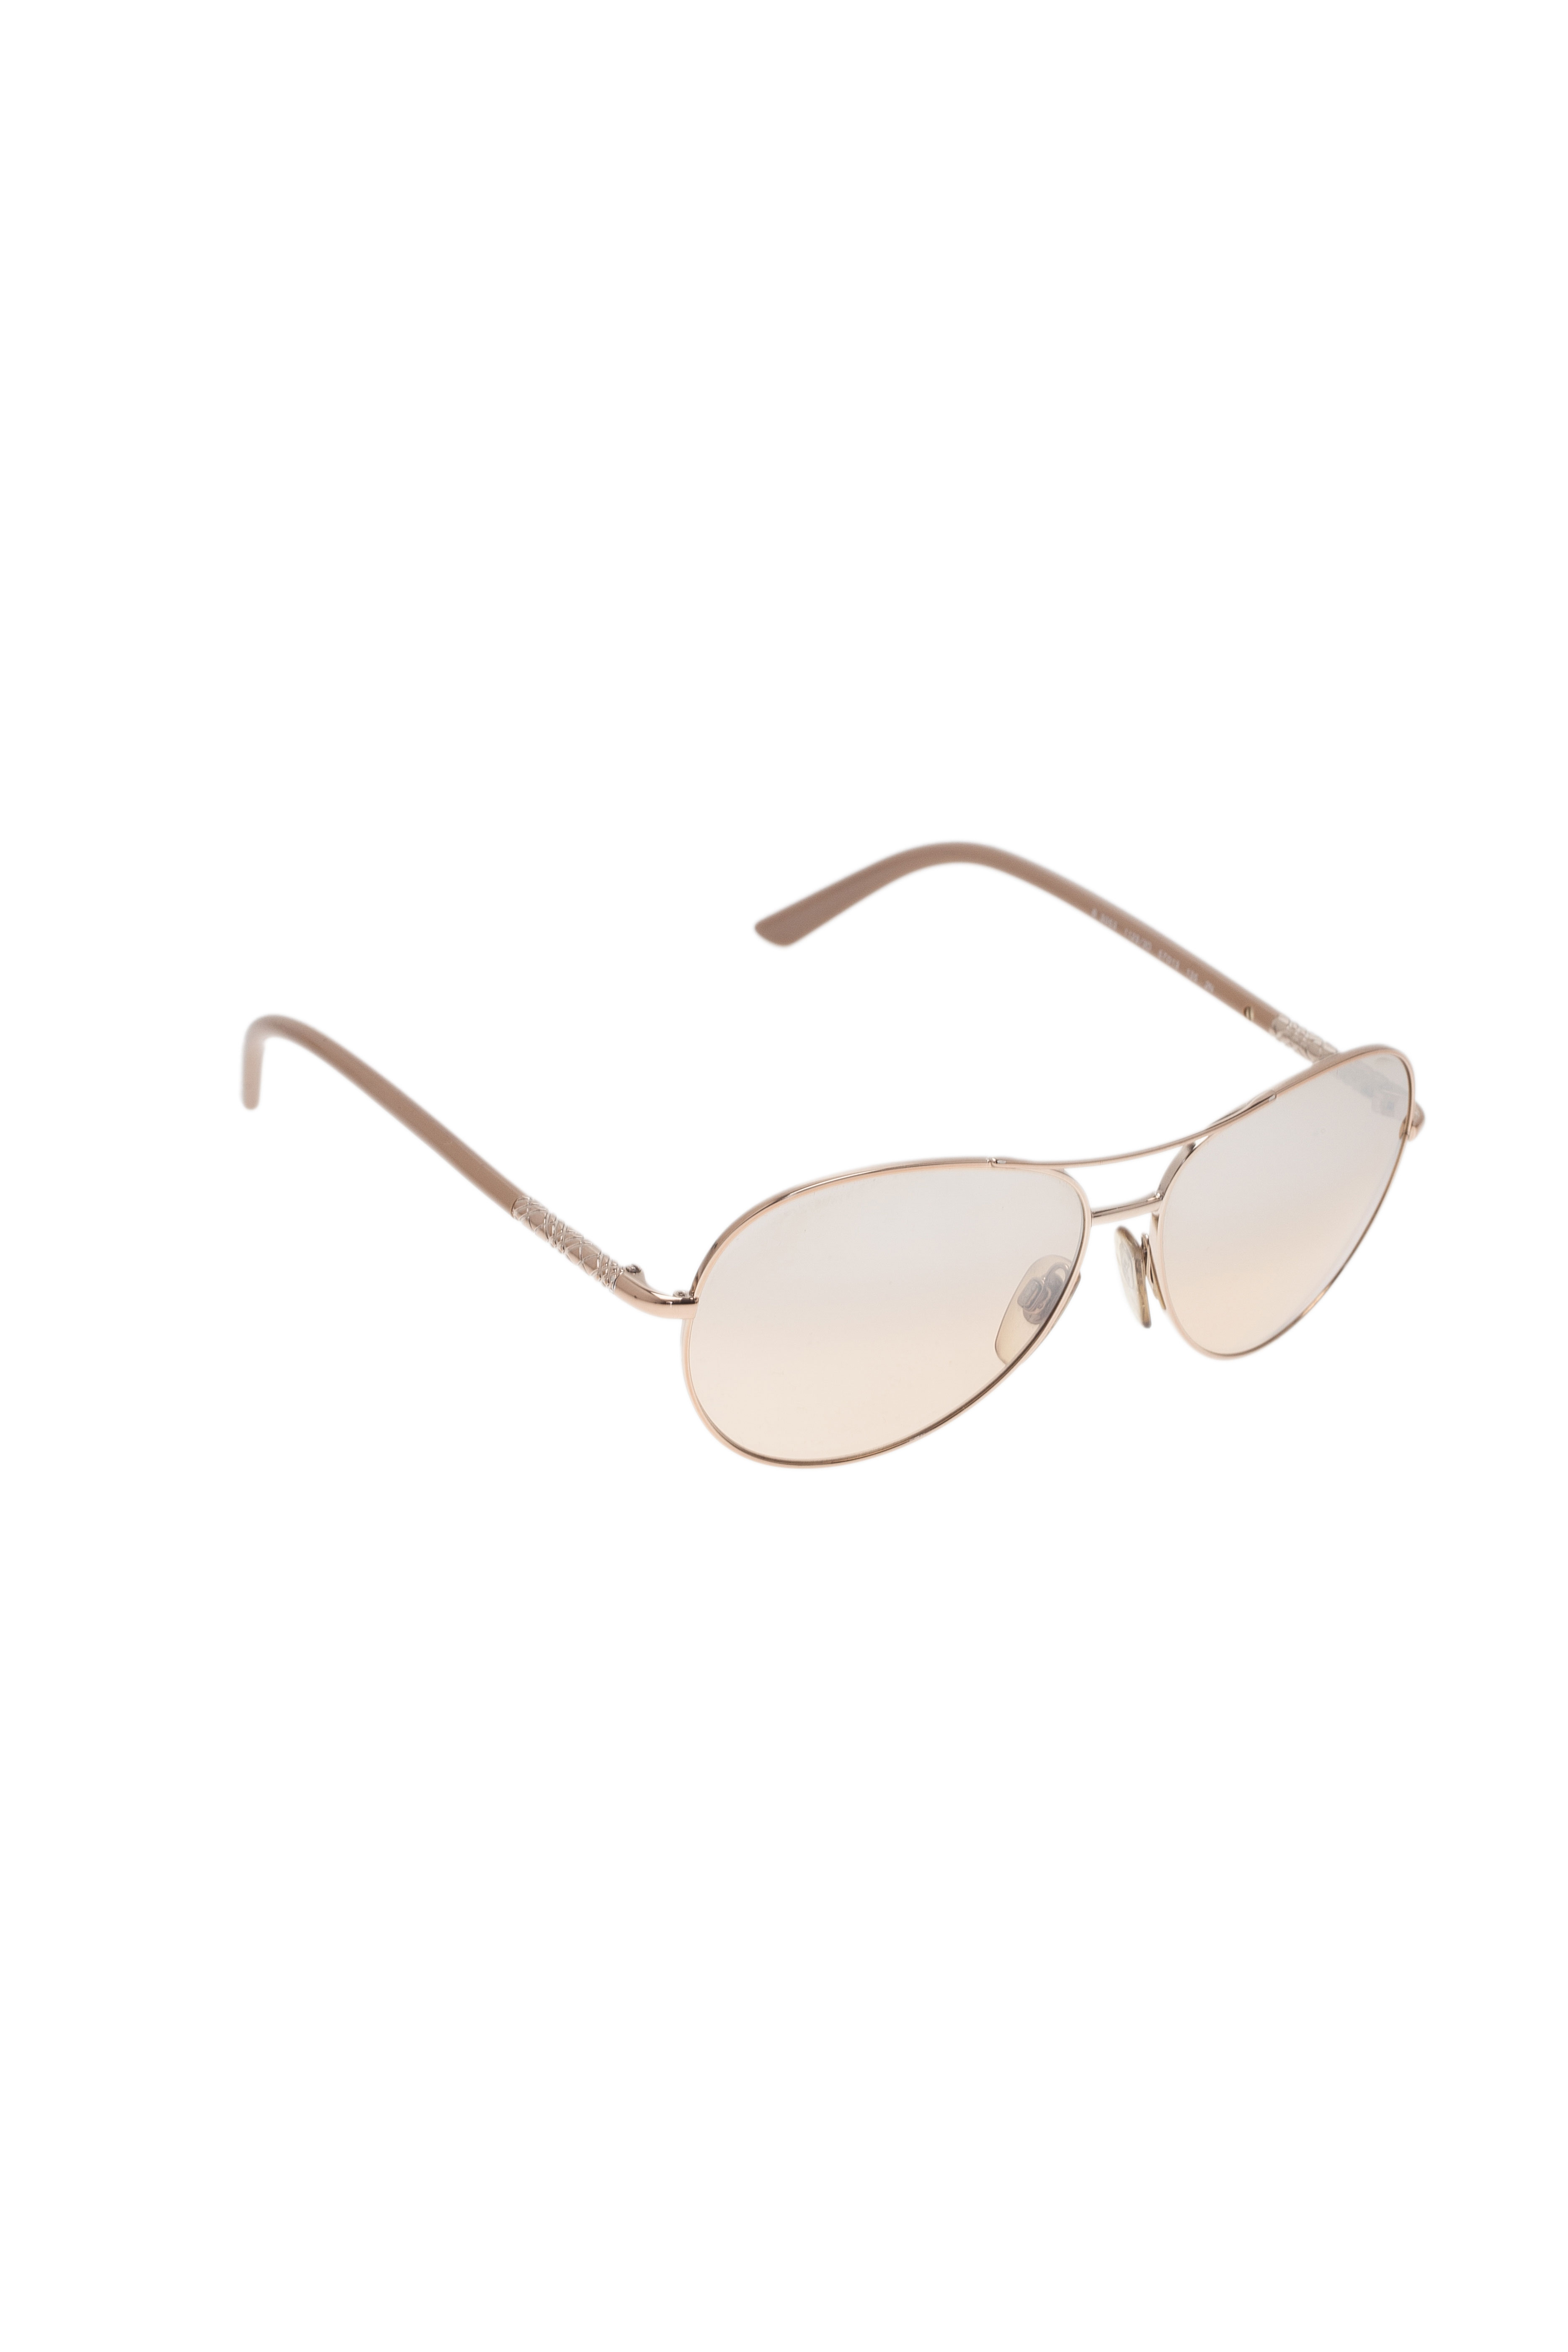 Burberry Gold 3053 Aviators